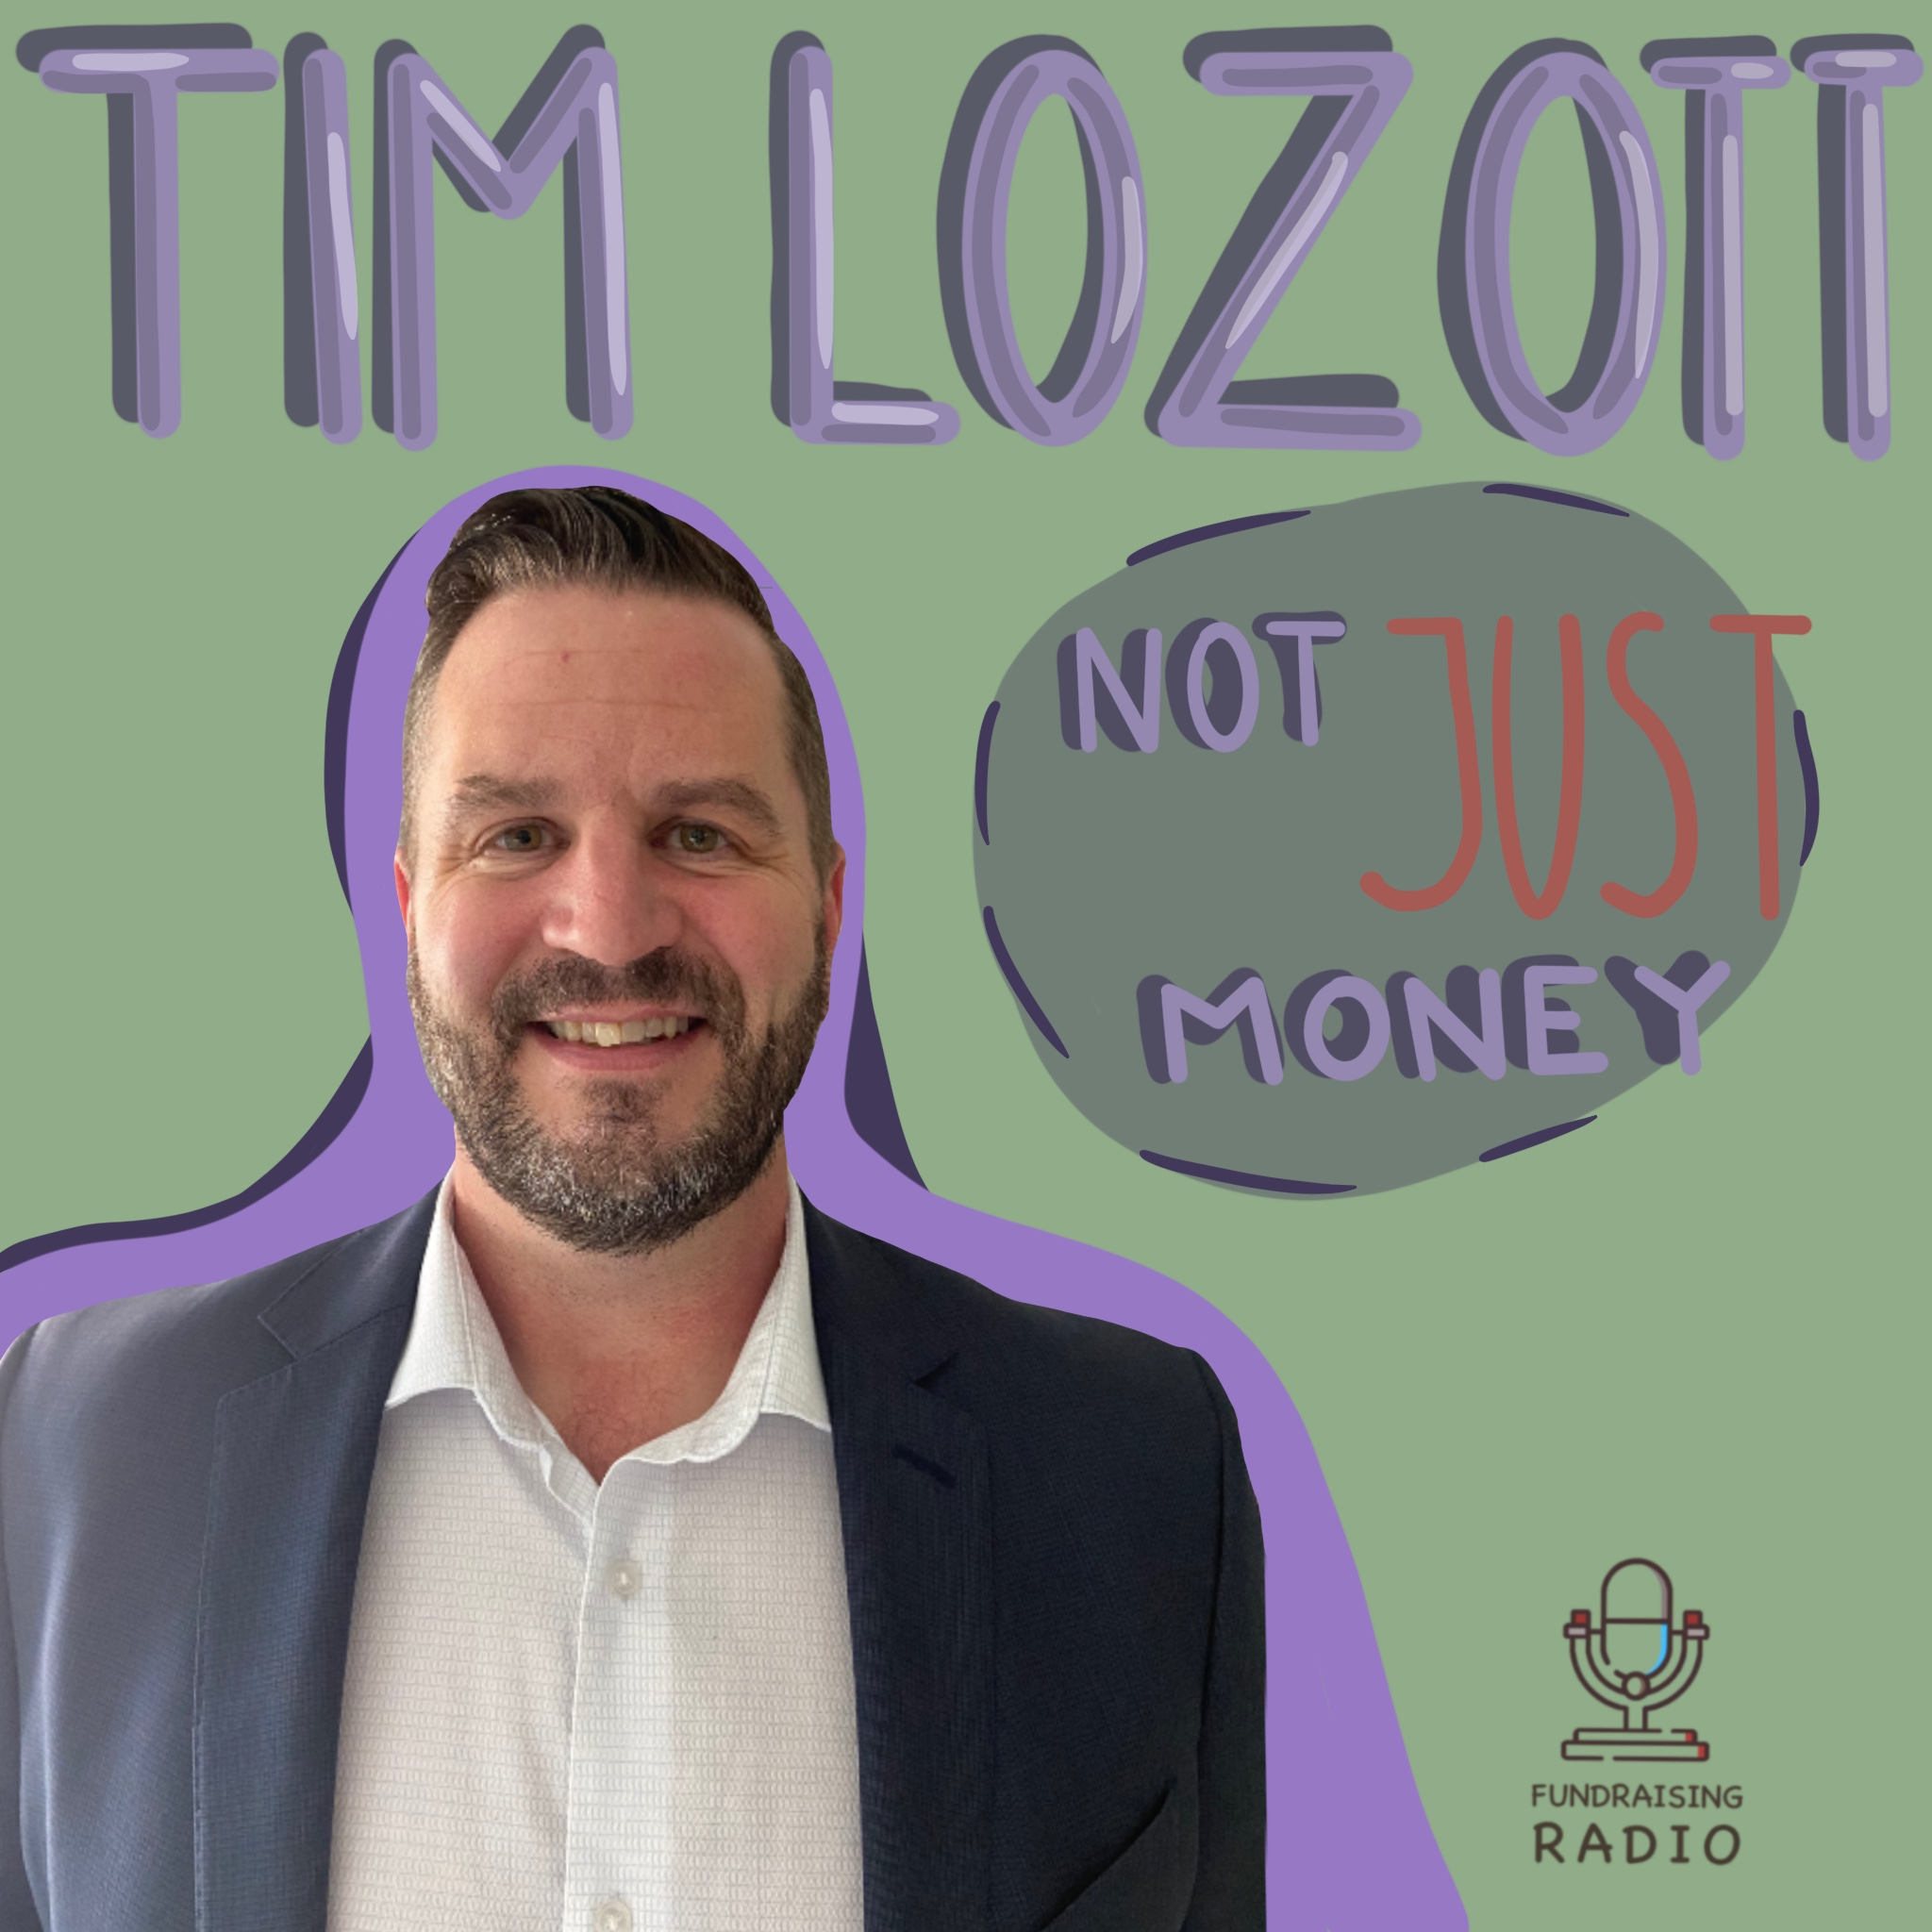 """No investor wants to be """"just money"""" - how to work with investors, by Tim Lozott."""